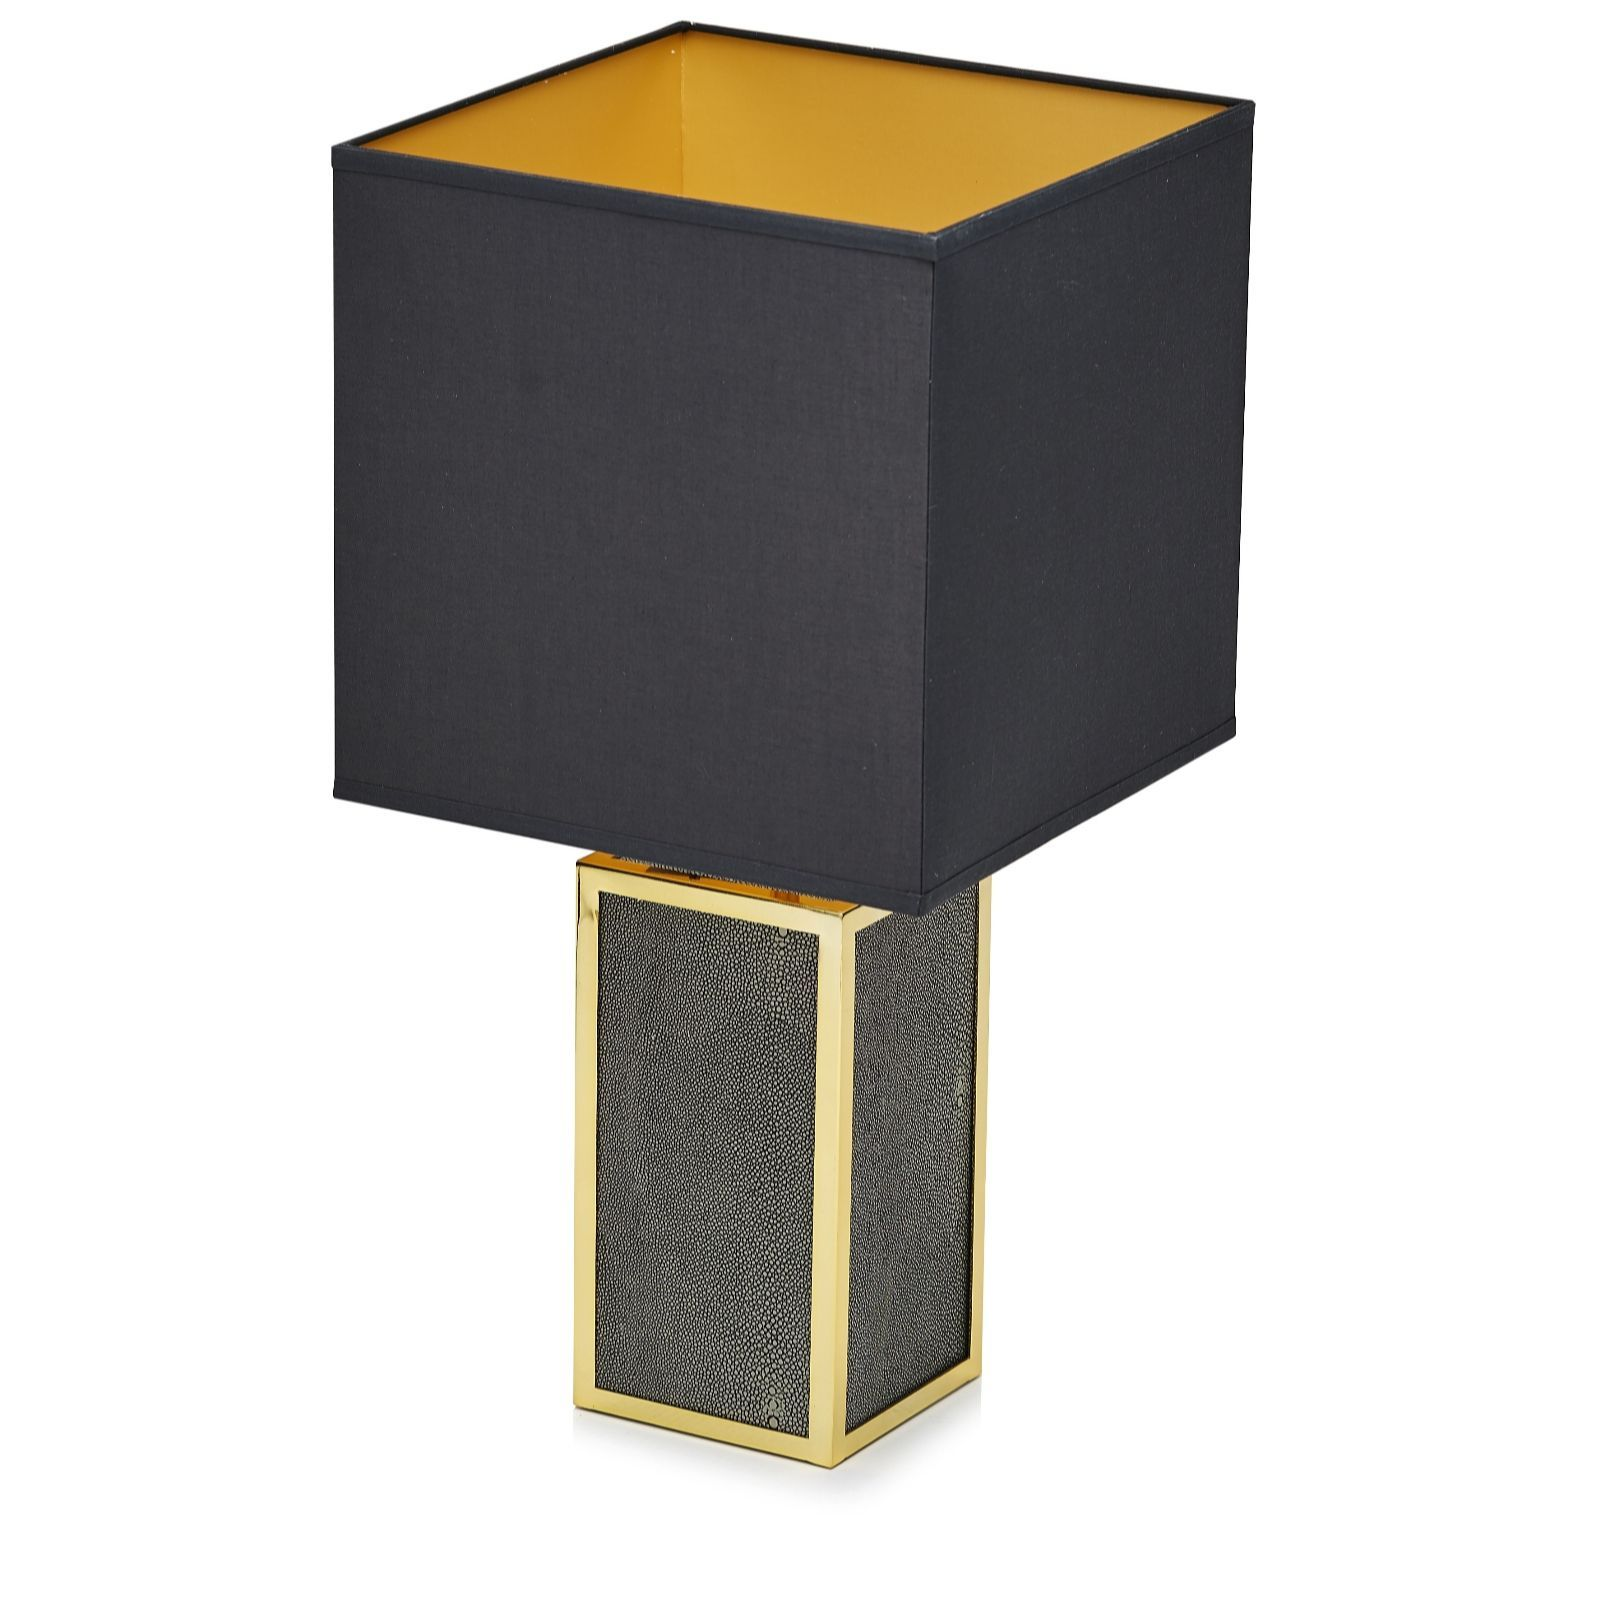 509562 jm by julien macdonald safari snake effect table lamp qvc 509562 jm by julien macdonald safari snake effect table lamp qvc price 12900 pp 795 or 2 easy pays of 6450 pp a striking table lamp from jm geotapseo Image collections